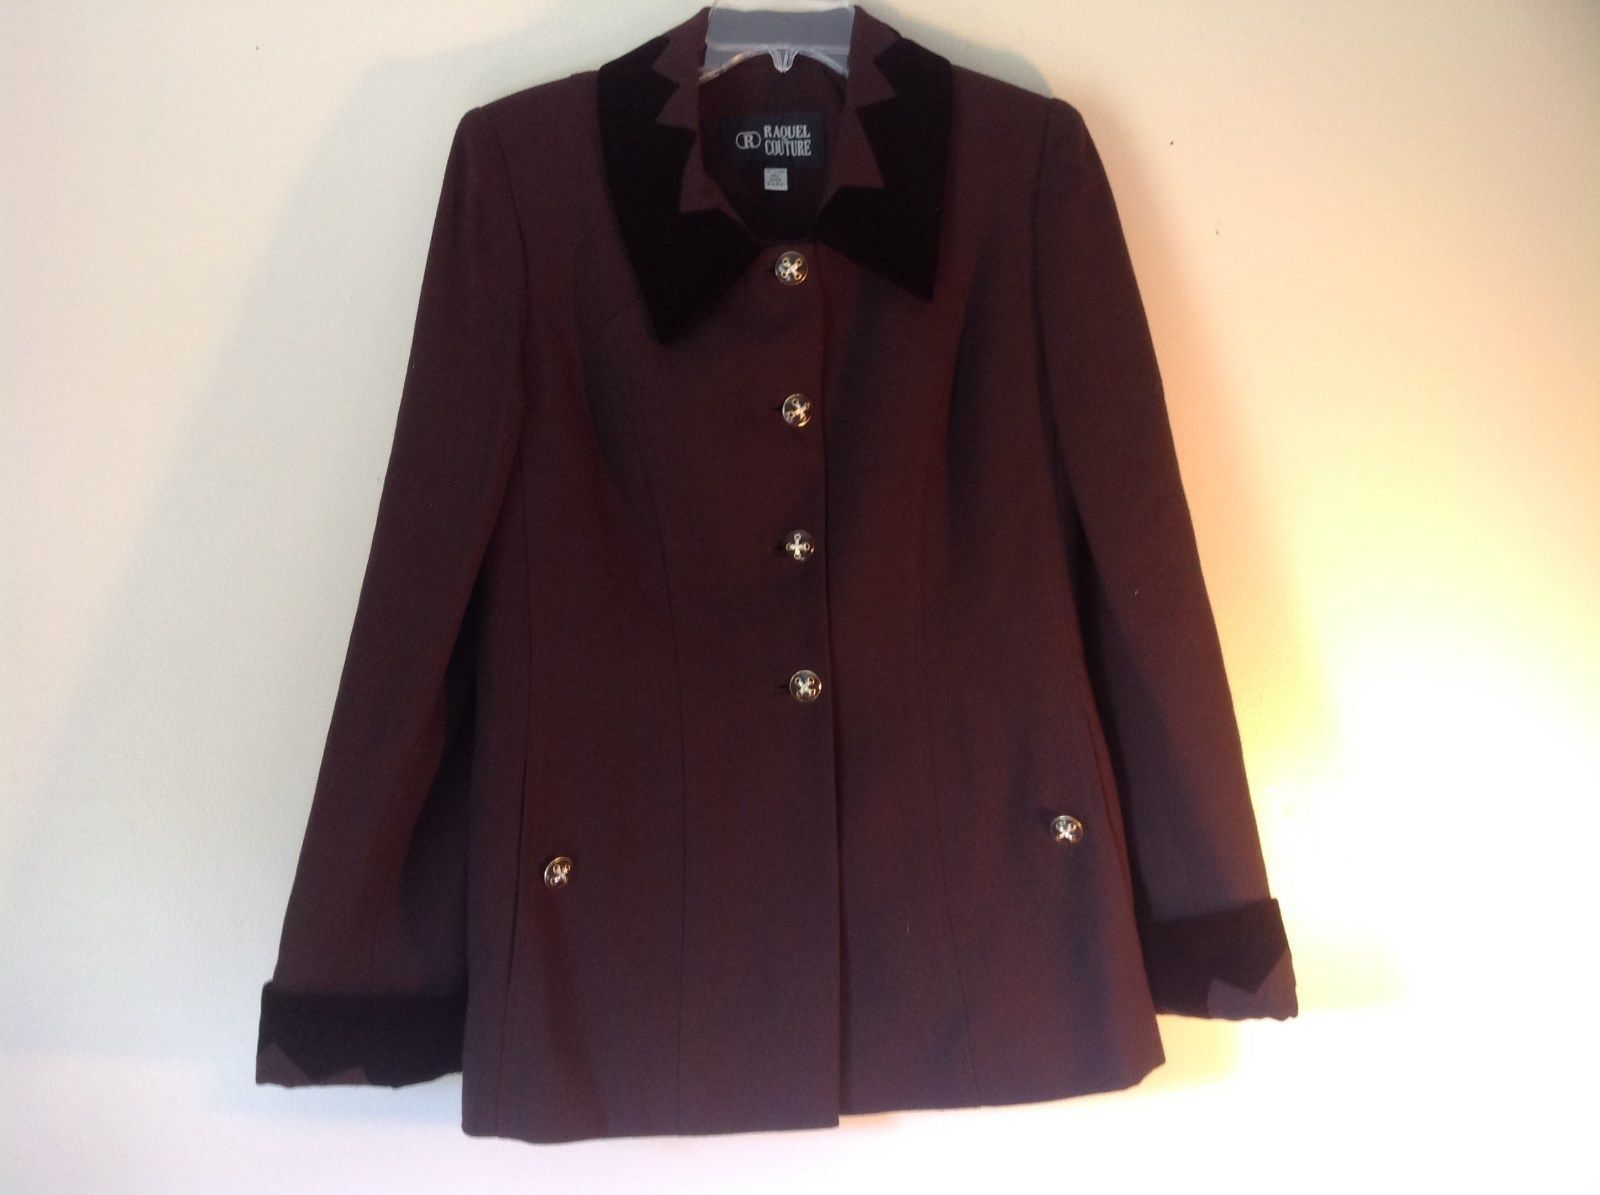 Raquel Couture Brown Blazer Four Fancy Button Closure No Size Tag Made in USA